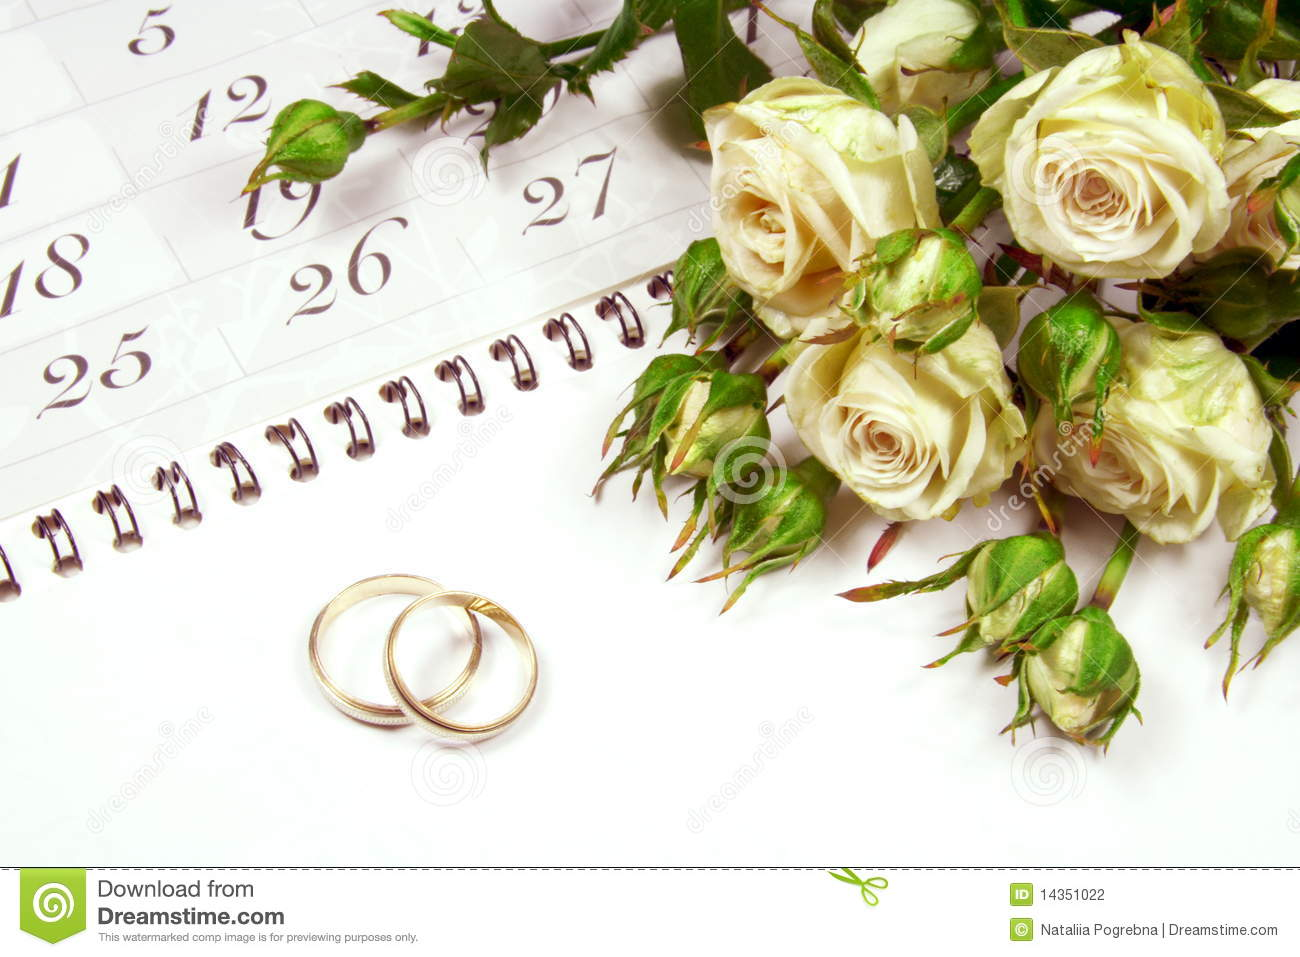 stock photography couple wedding rings calender image couples wedding bands Couple of Wedding Rings on Calender